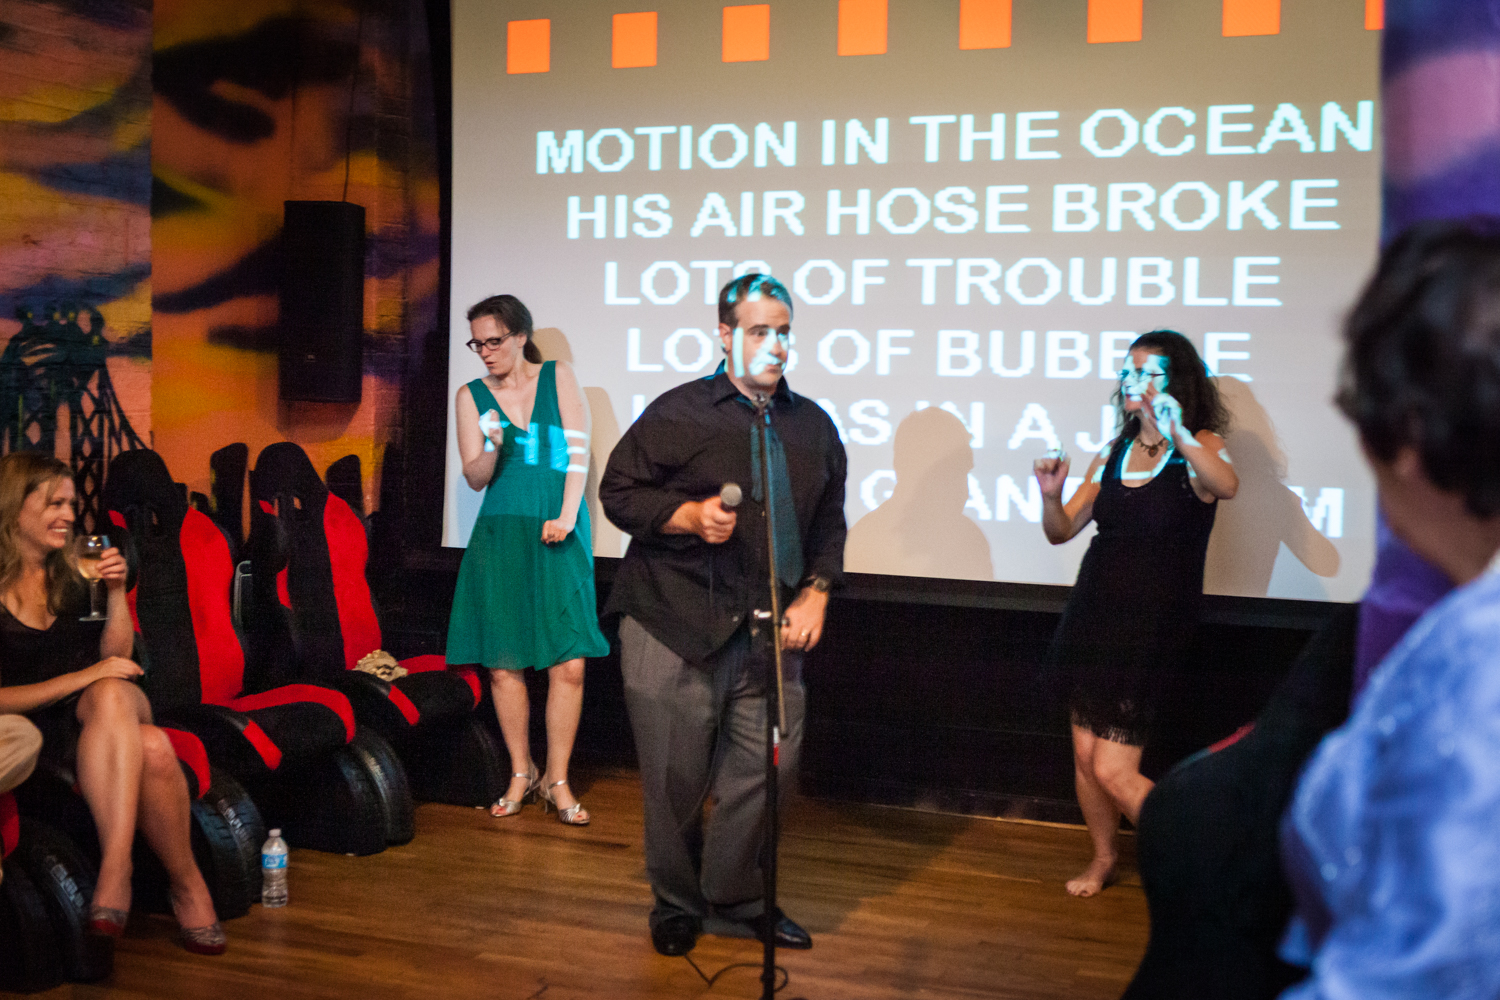 Three people singing karaoke in front of screen with words